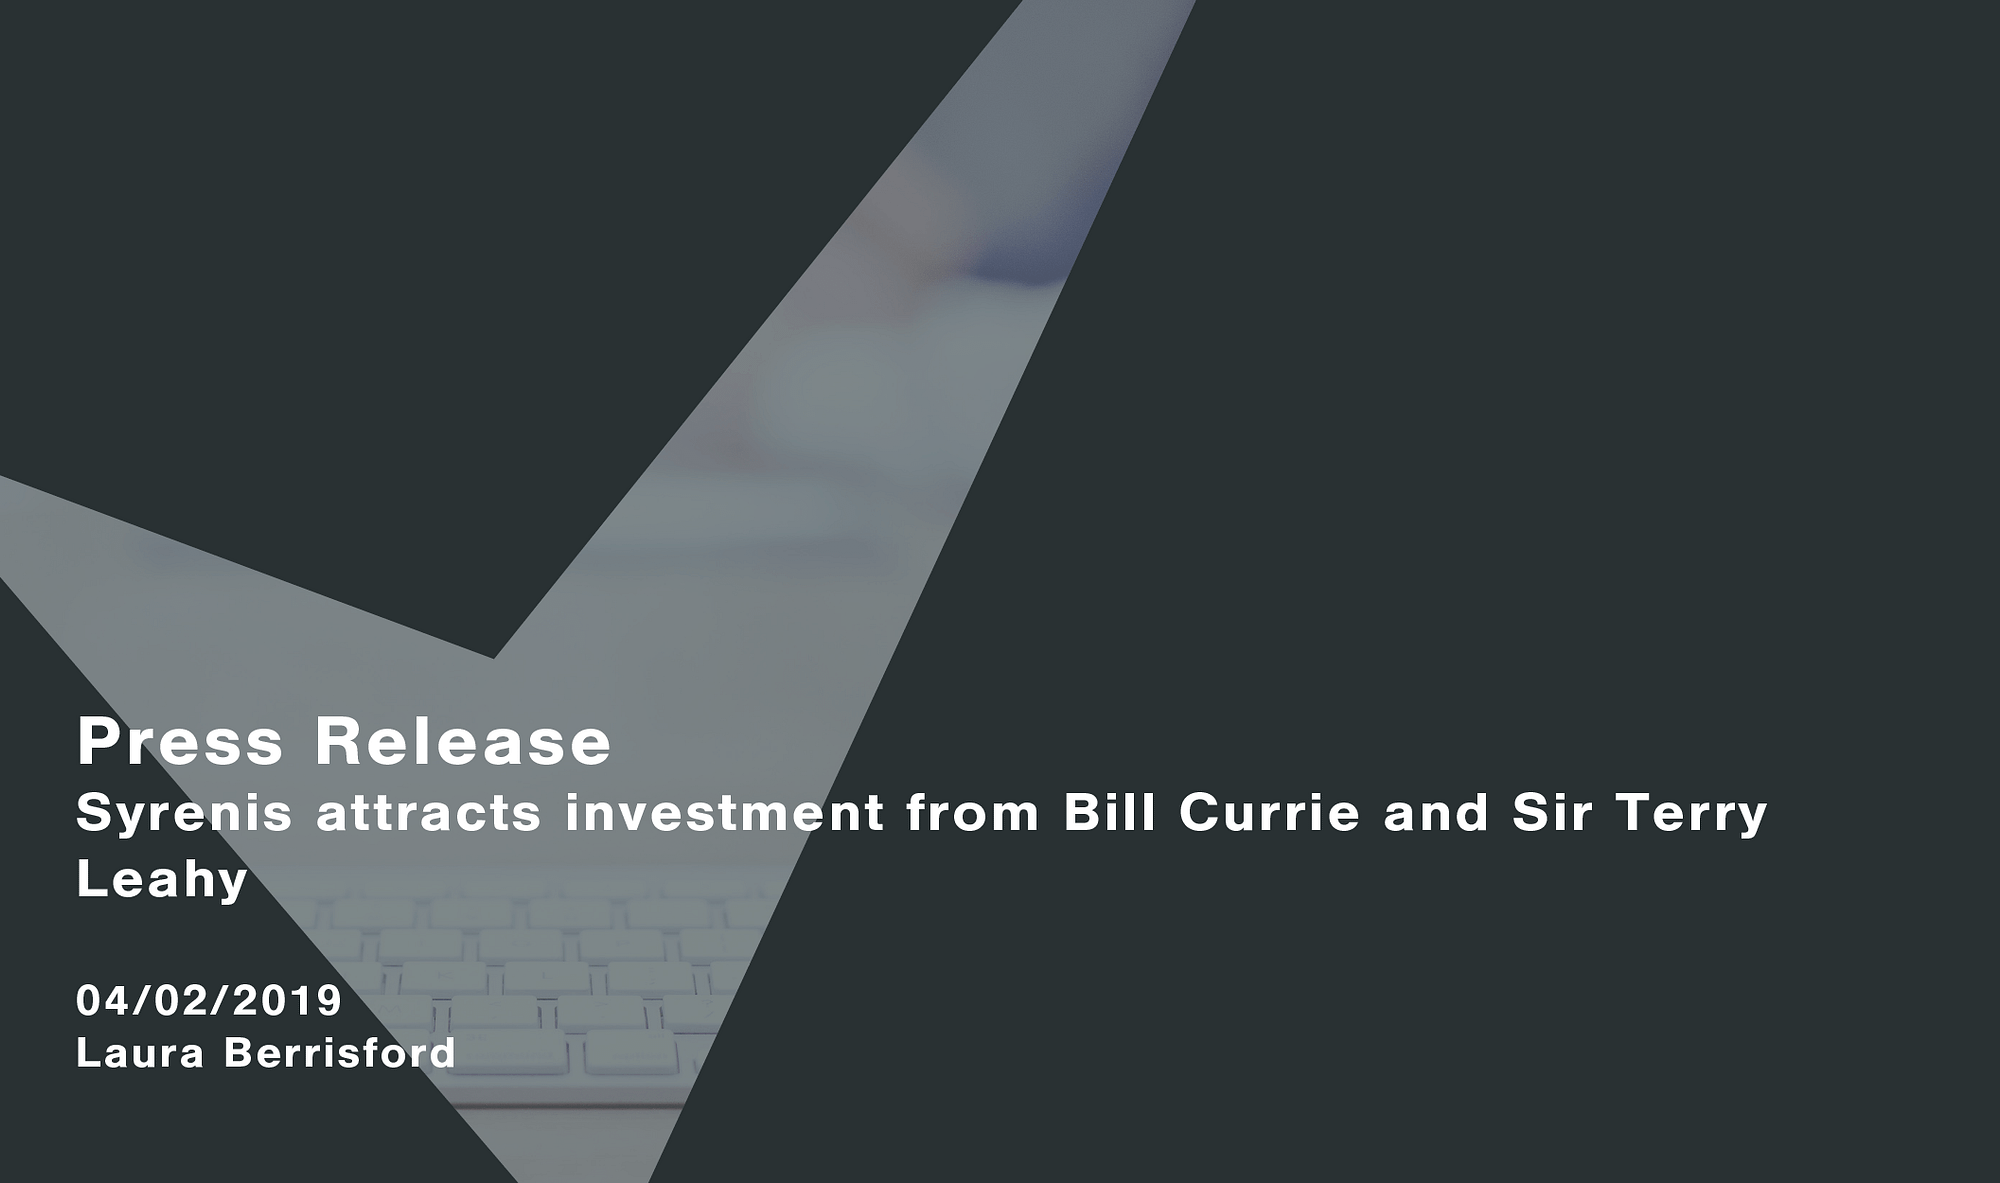 Syrenis-attracts-investment-from-Bill-Currie-and-Sir-Terry-Leahy